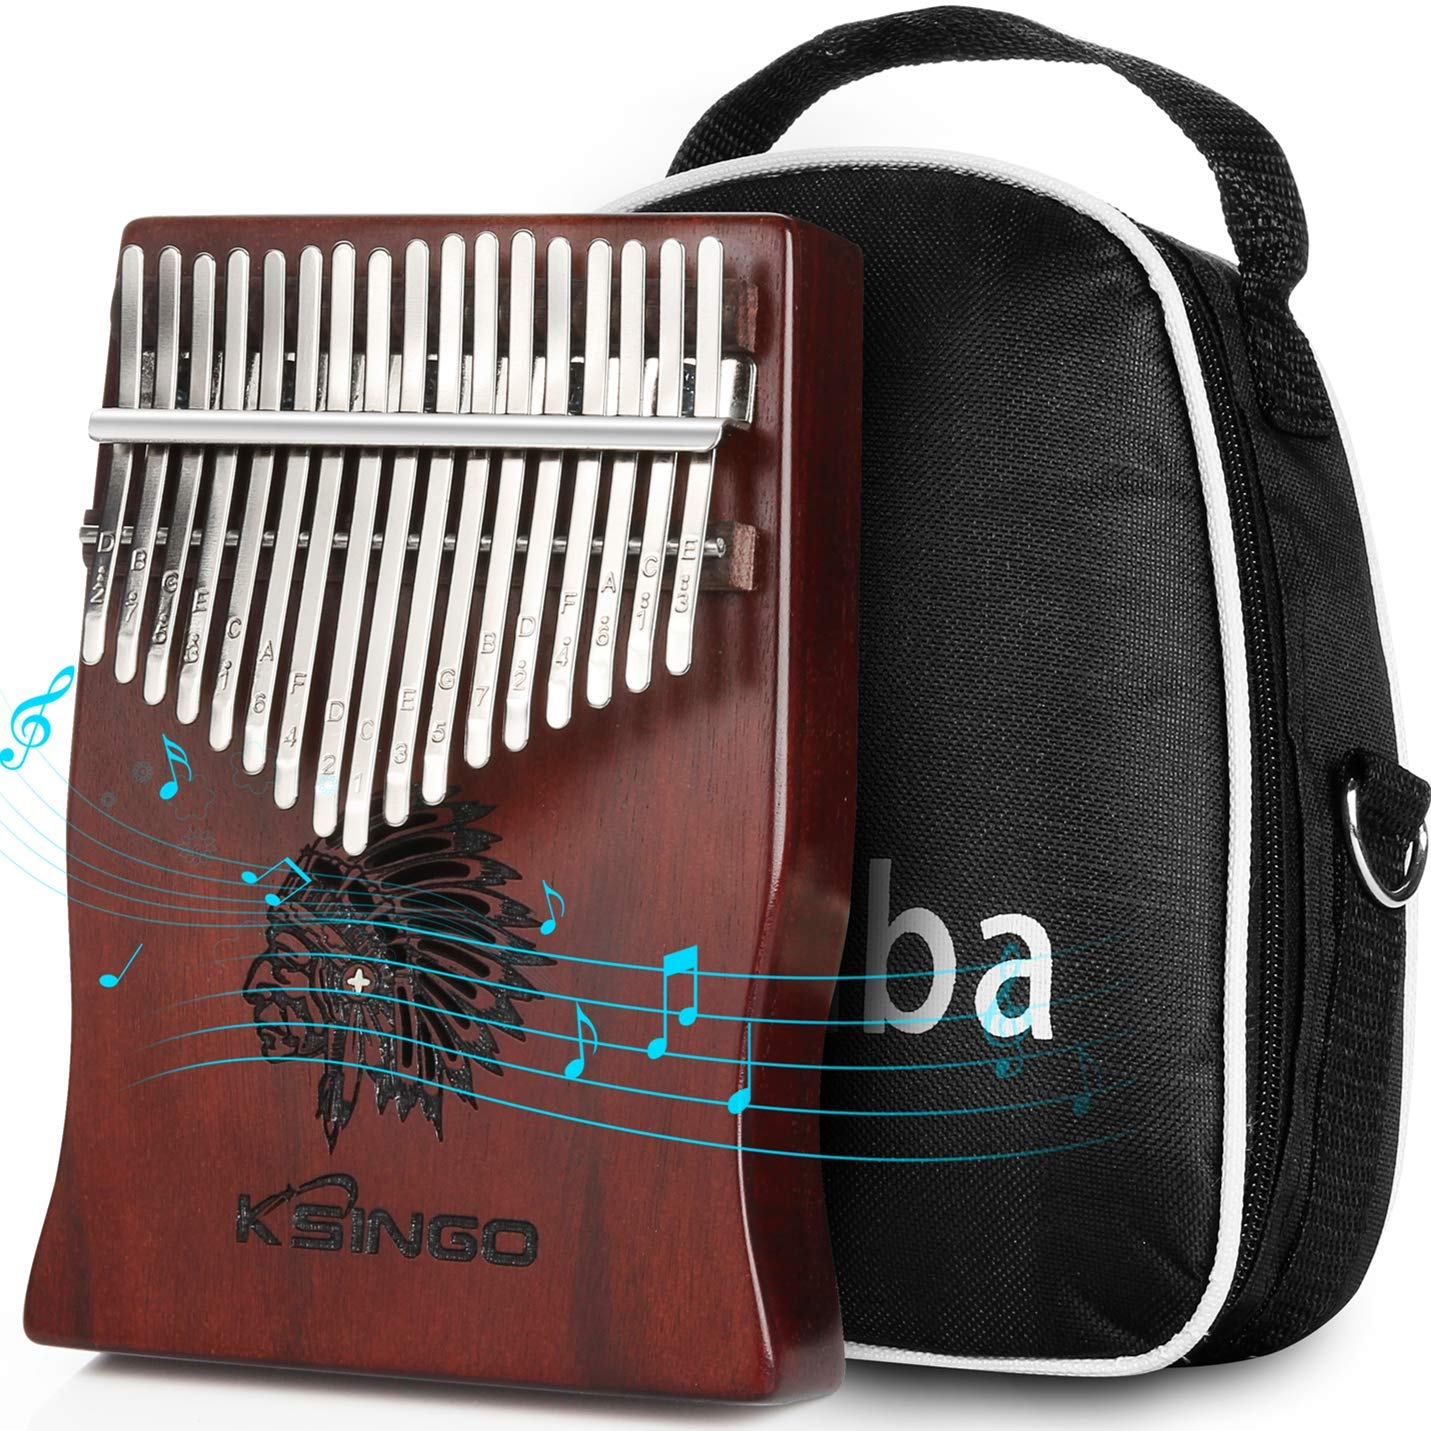 Kalimba 17 Keys Thumb Piano, Portable 17 Tone Mbira Musical instrument, Premium Rosewood Body Ore Metal Tines Finger Piano, Unique Gift Birthday Gift Idea for Kids Adult Beginners & Professional by Ksingo